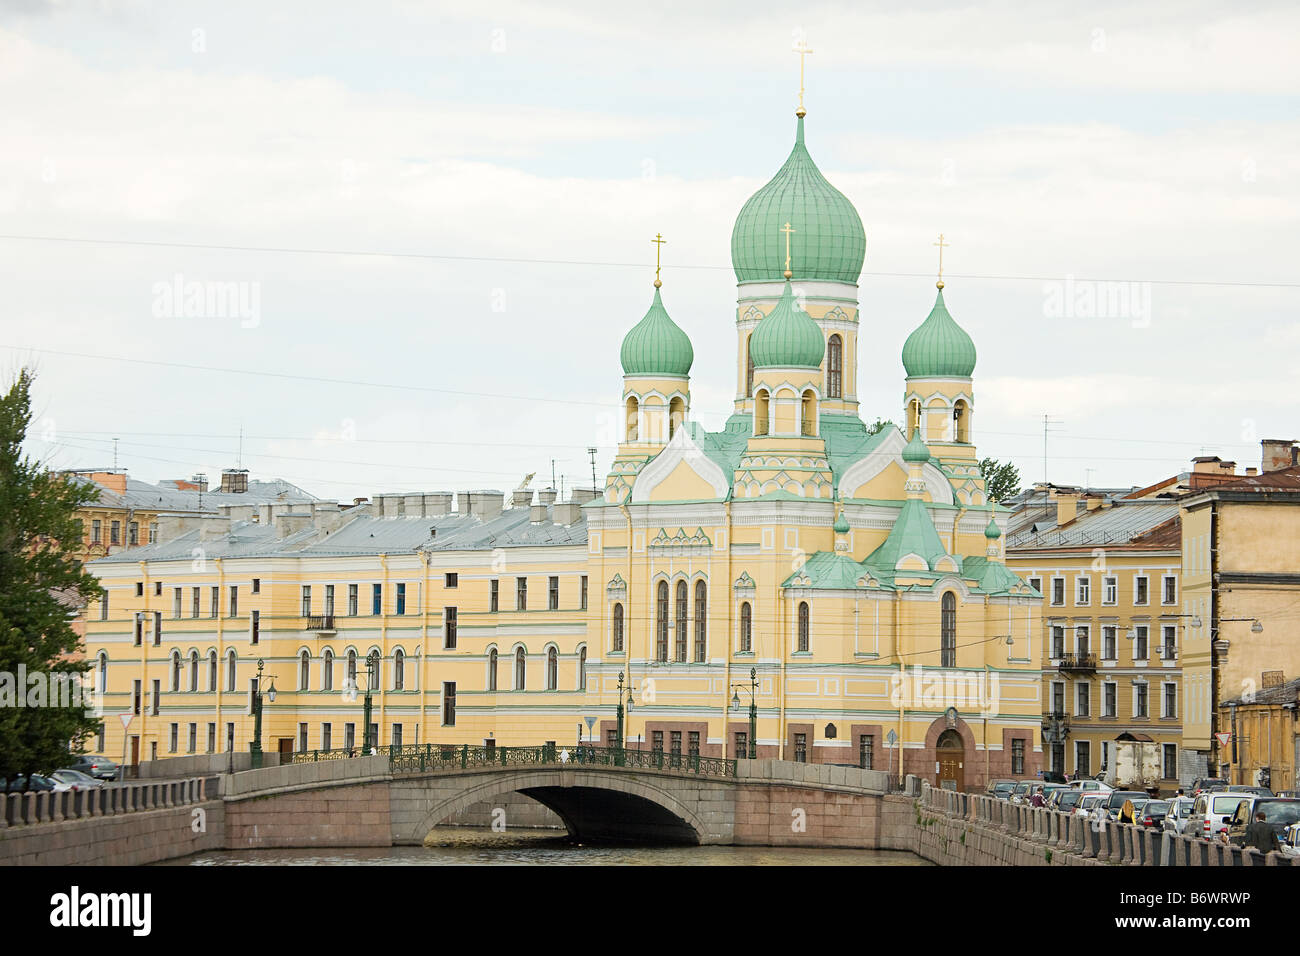 Church in st petersburg - Stock Image